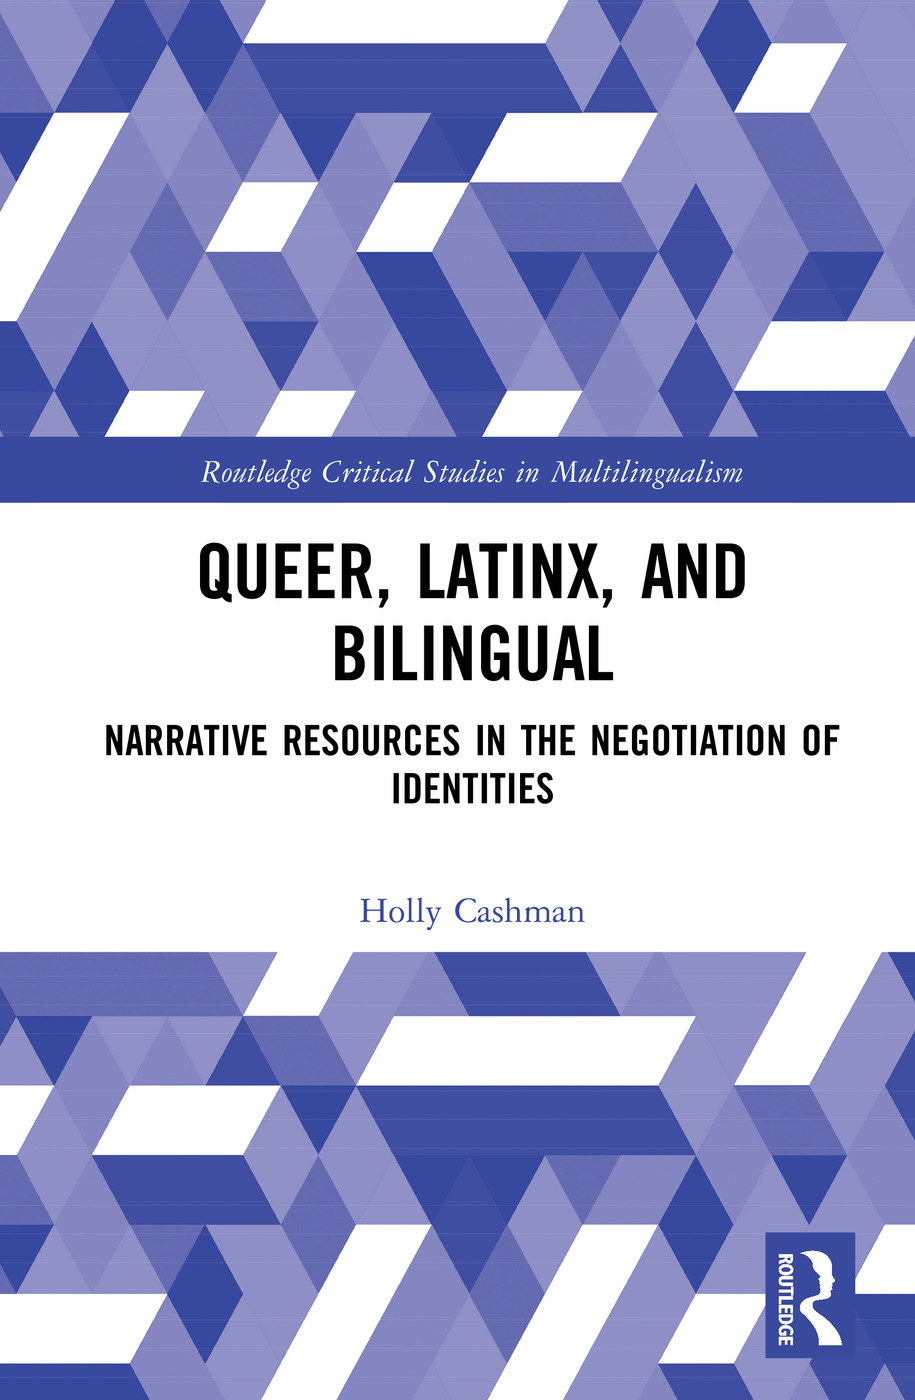 Queer, Latinx, and Bilingual: Narrative Resources in the Negotiation of Identities book cover